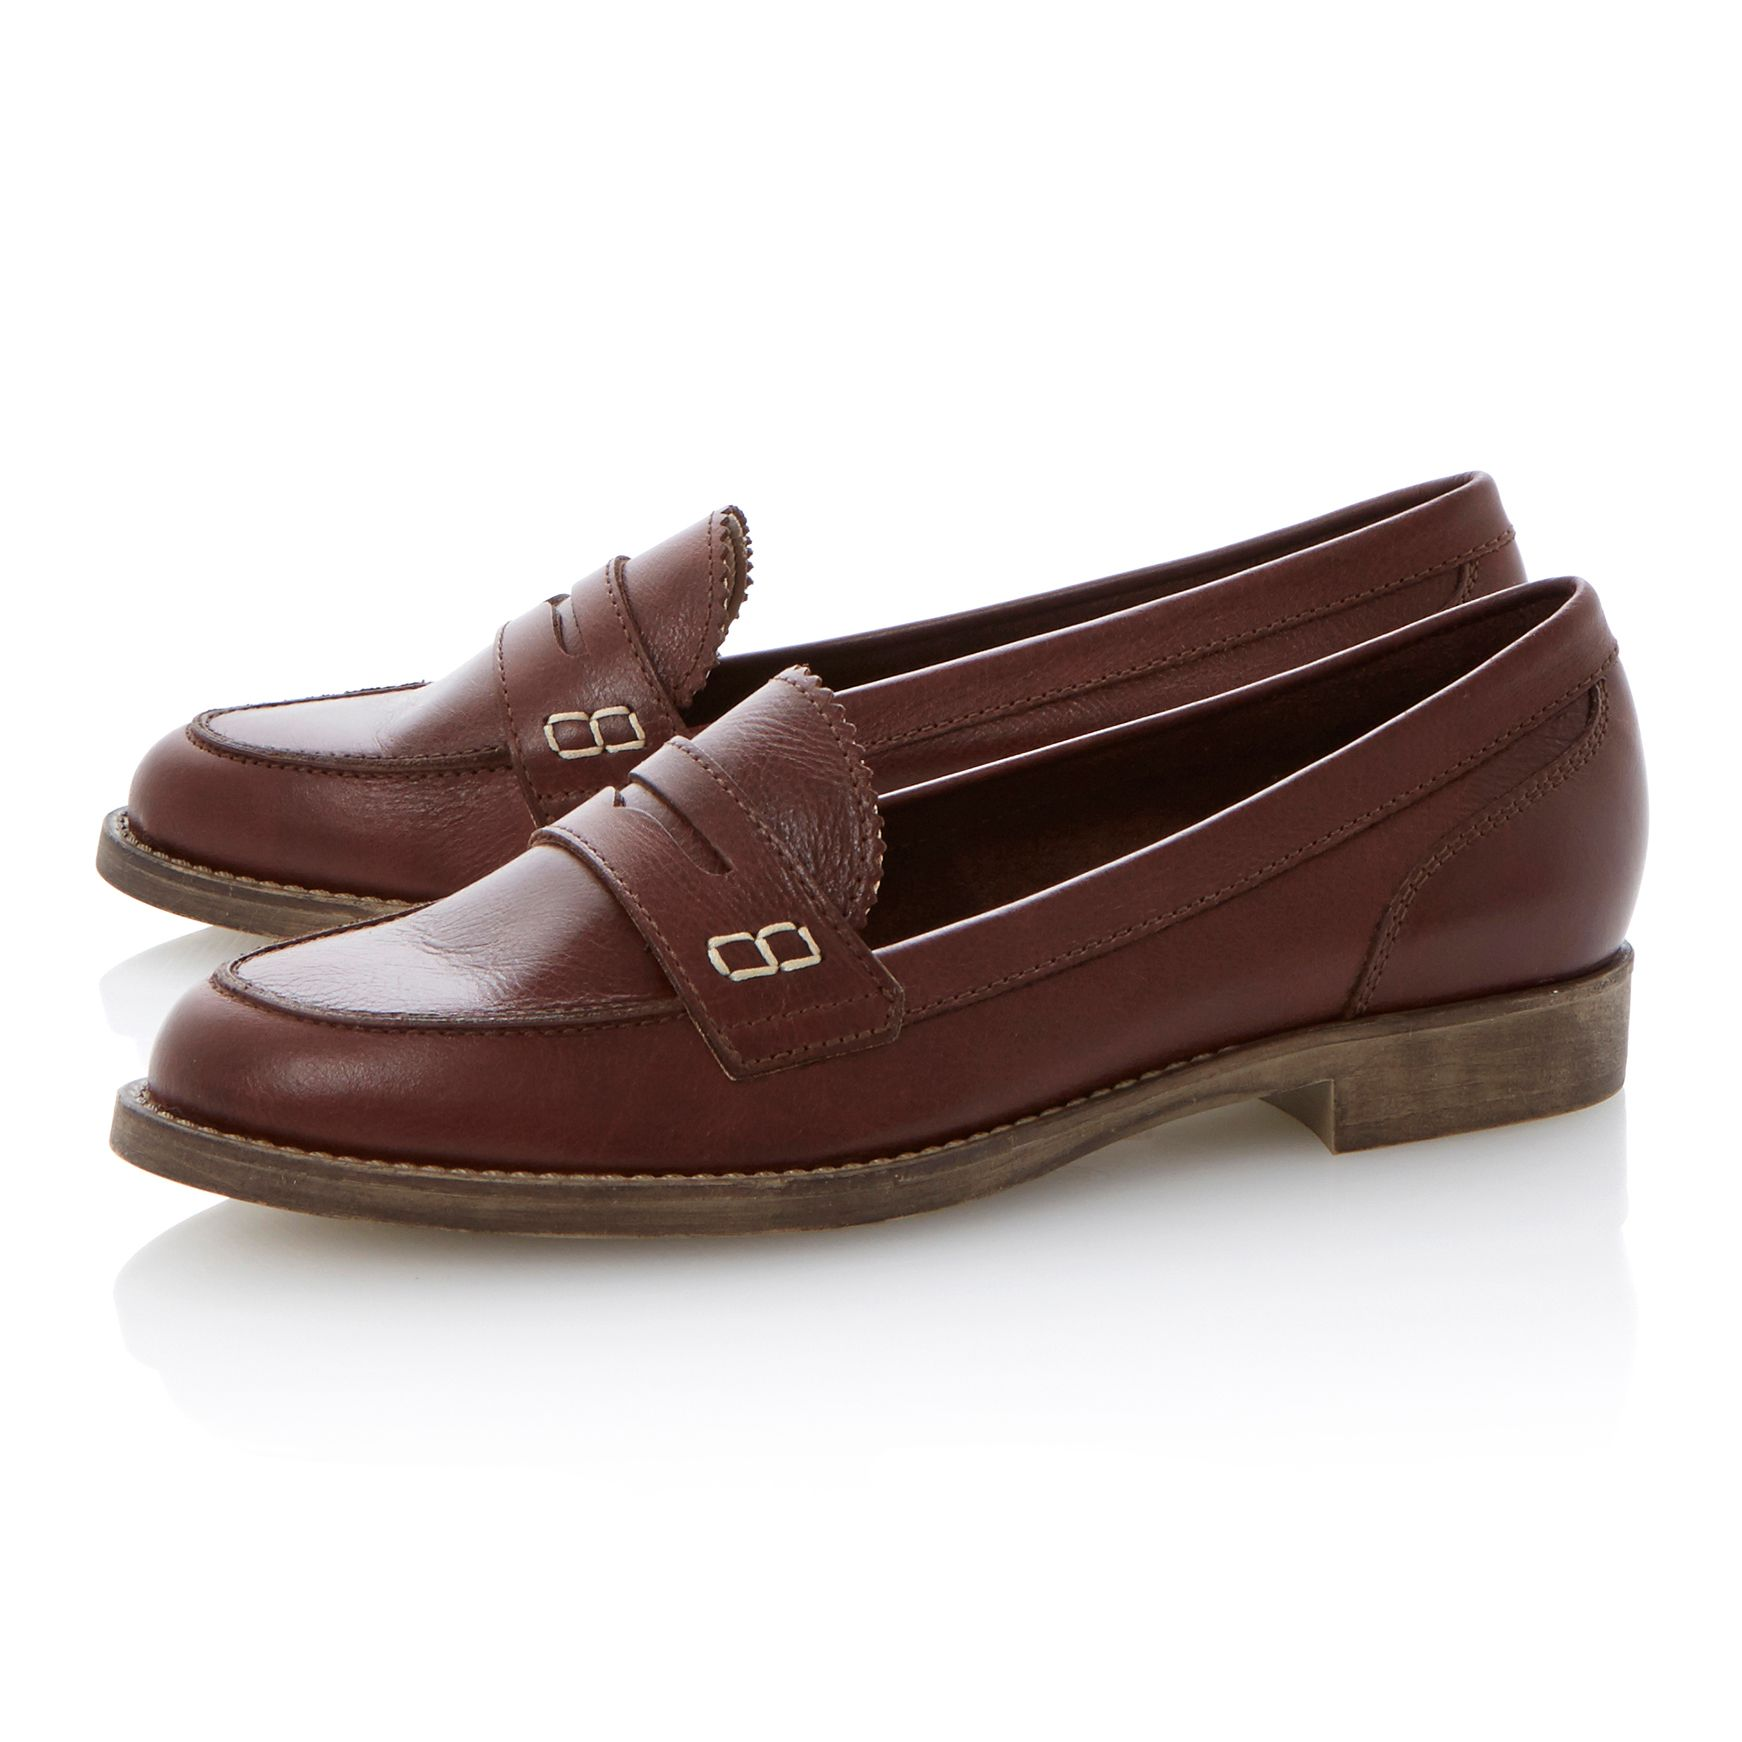 Lexus patent penny loafer shoes